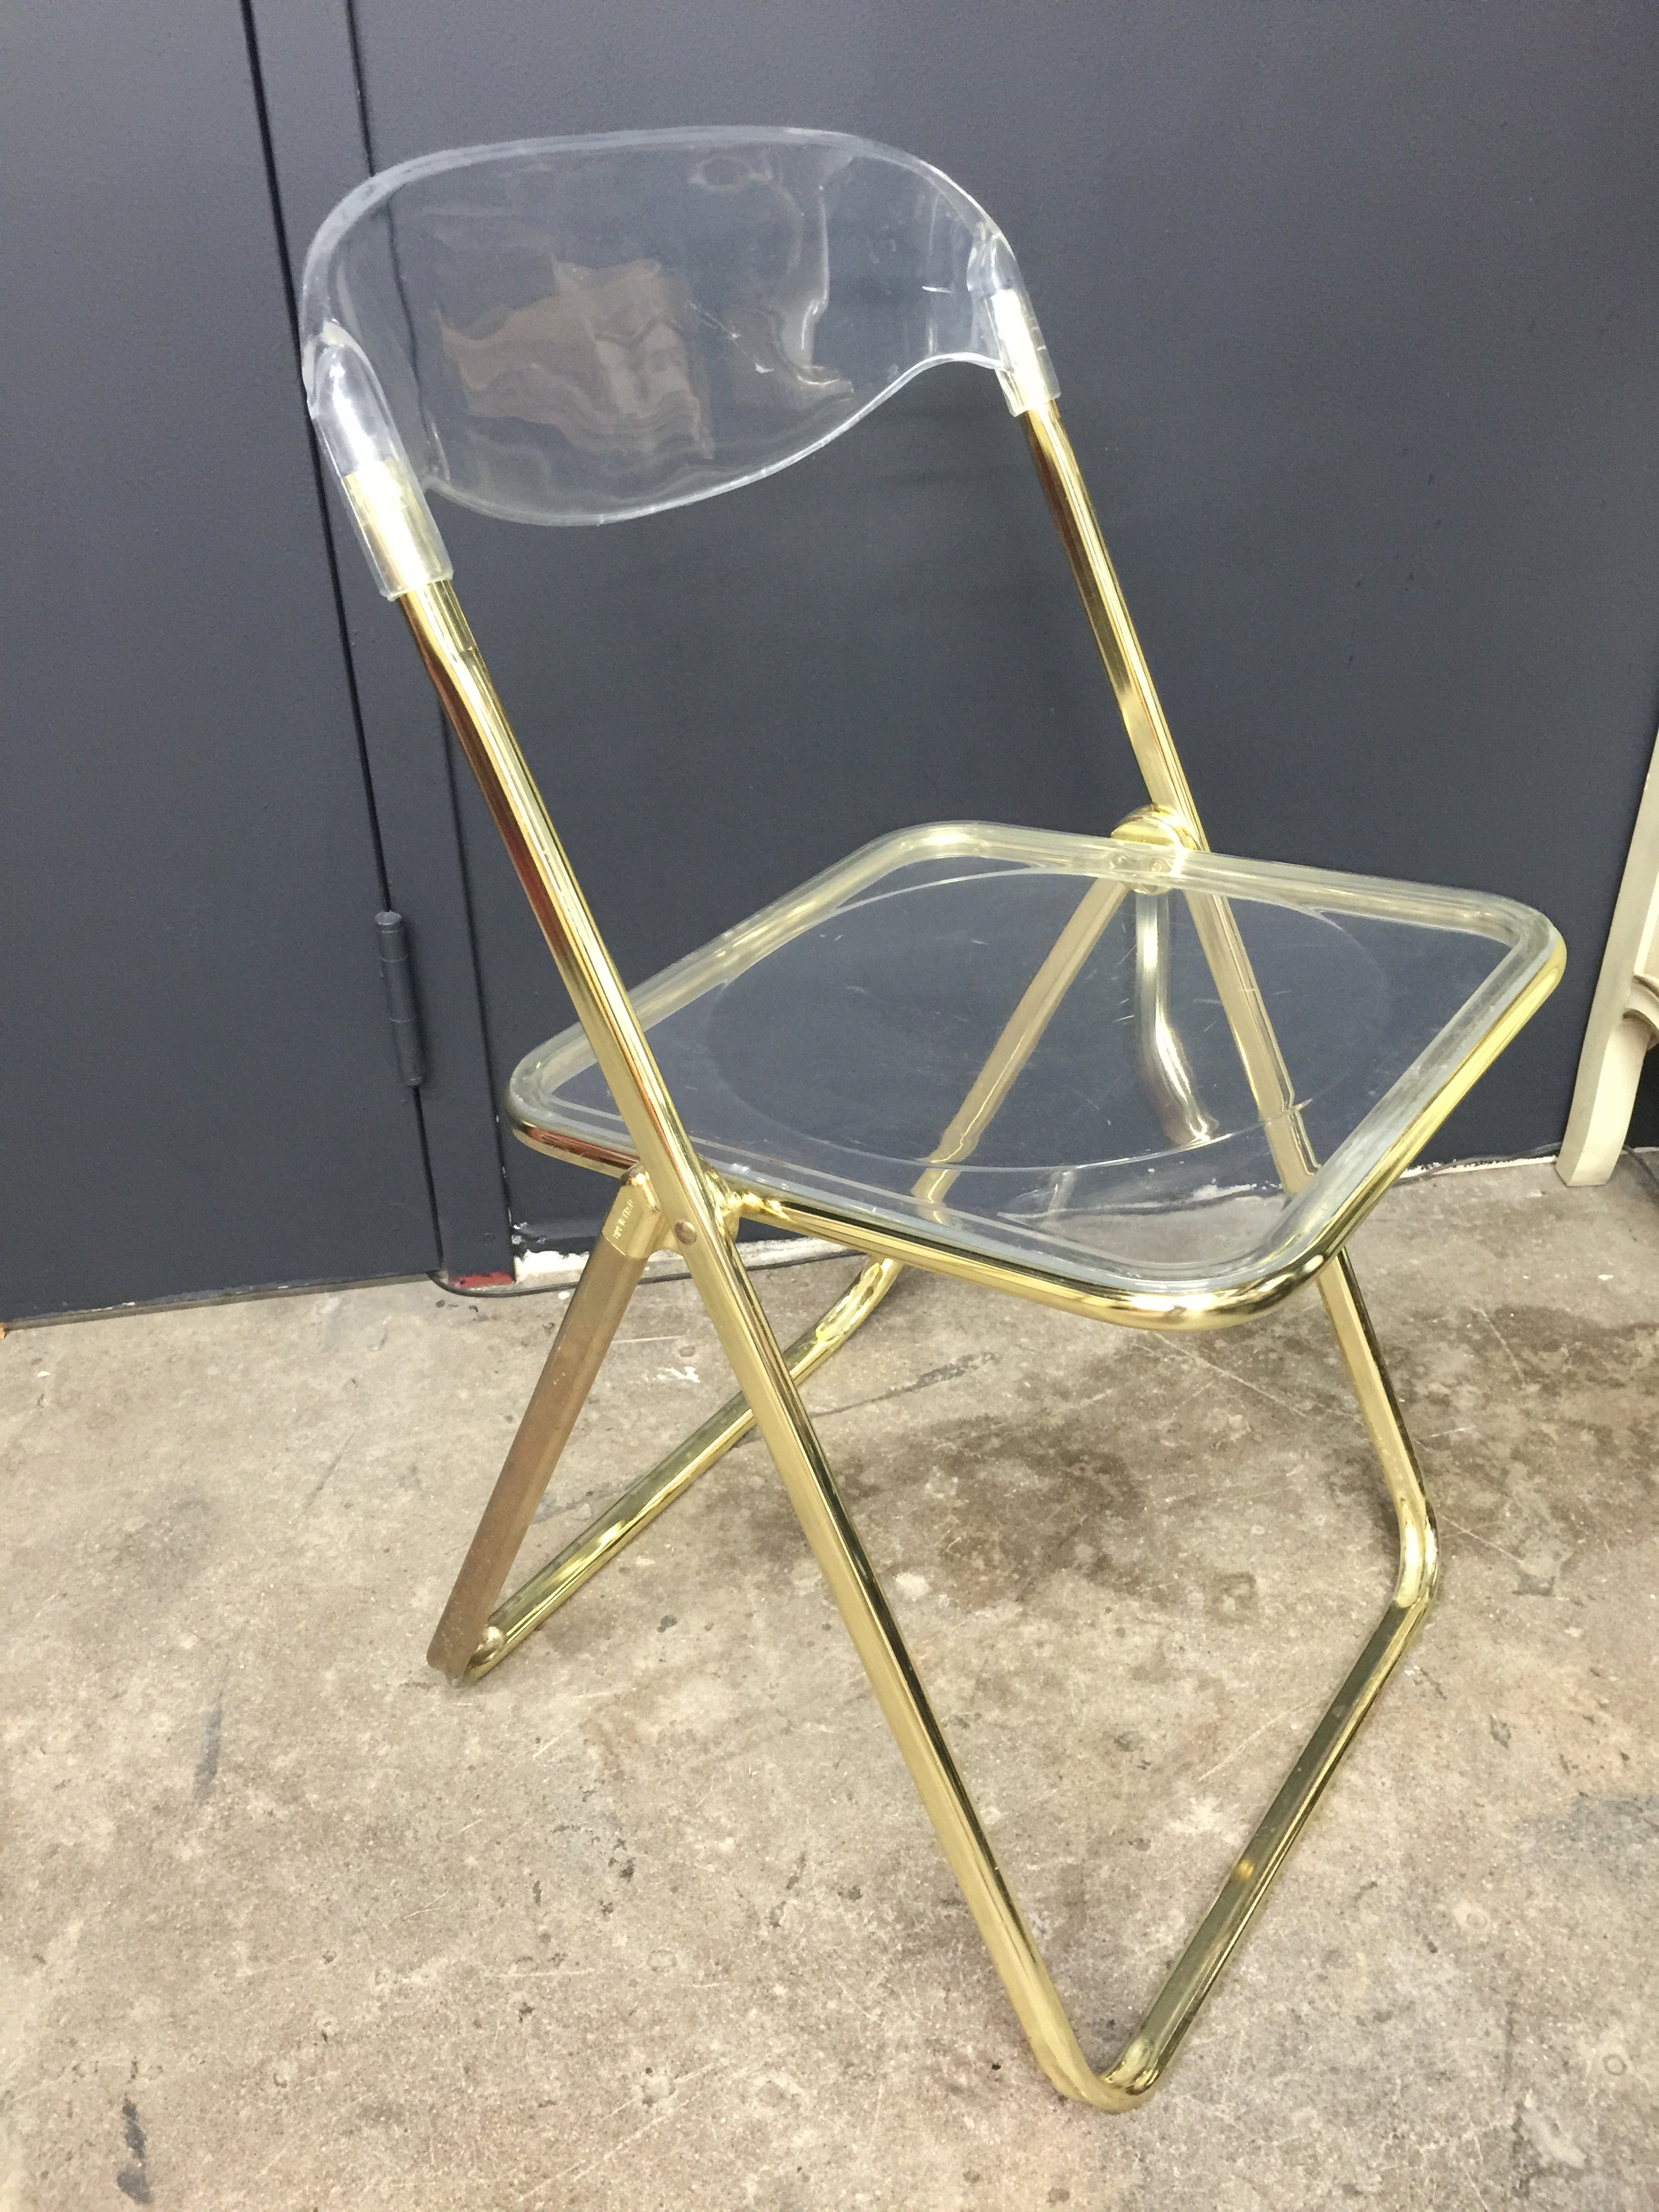 Brevattato Lucite  Gold Folding Chair  The Savoy Flea